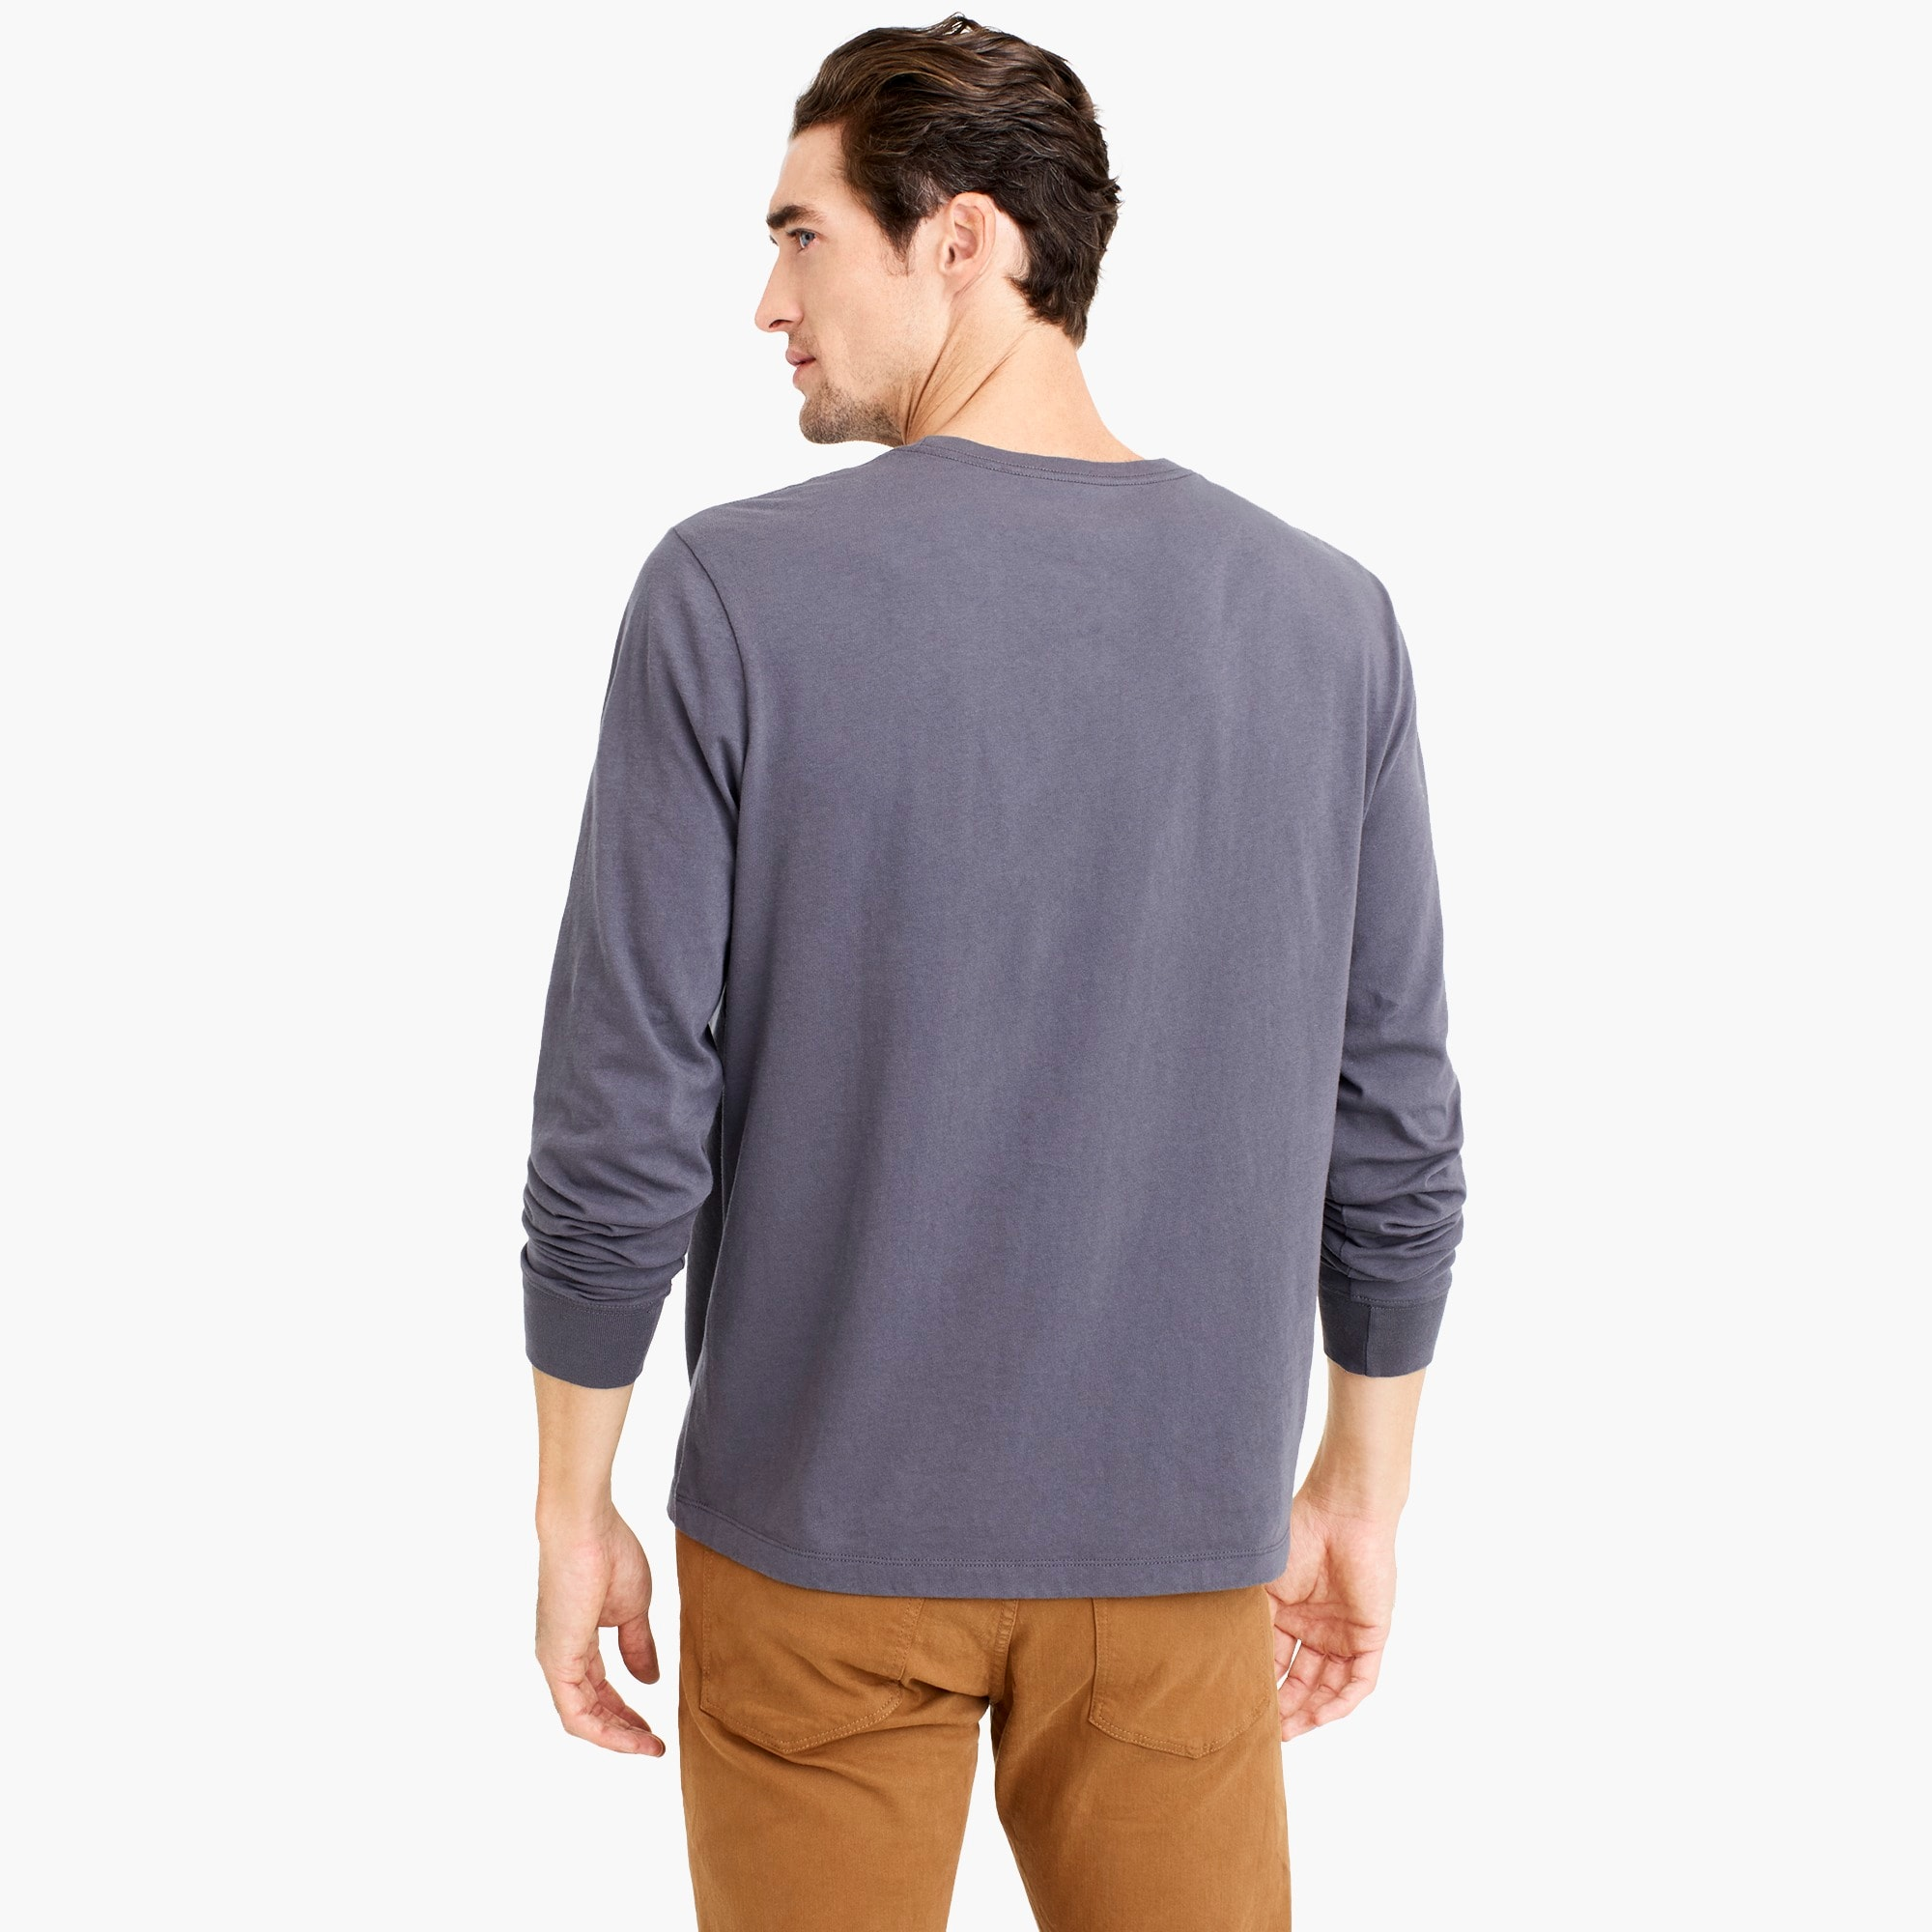 J.Crew Mercantile Broken-in long-sleeve T-shirt